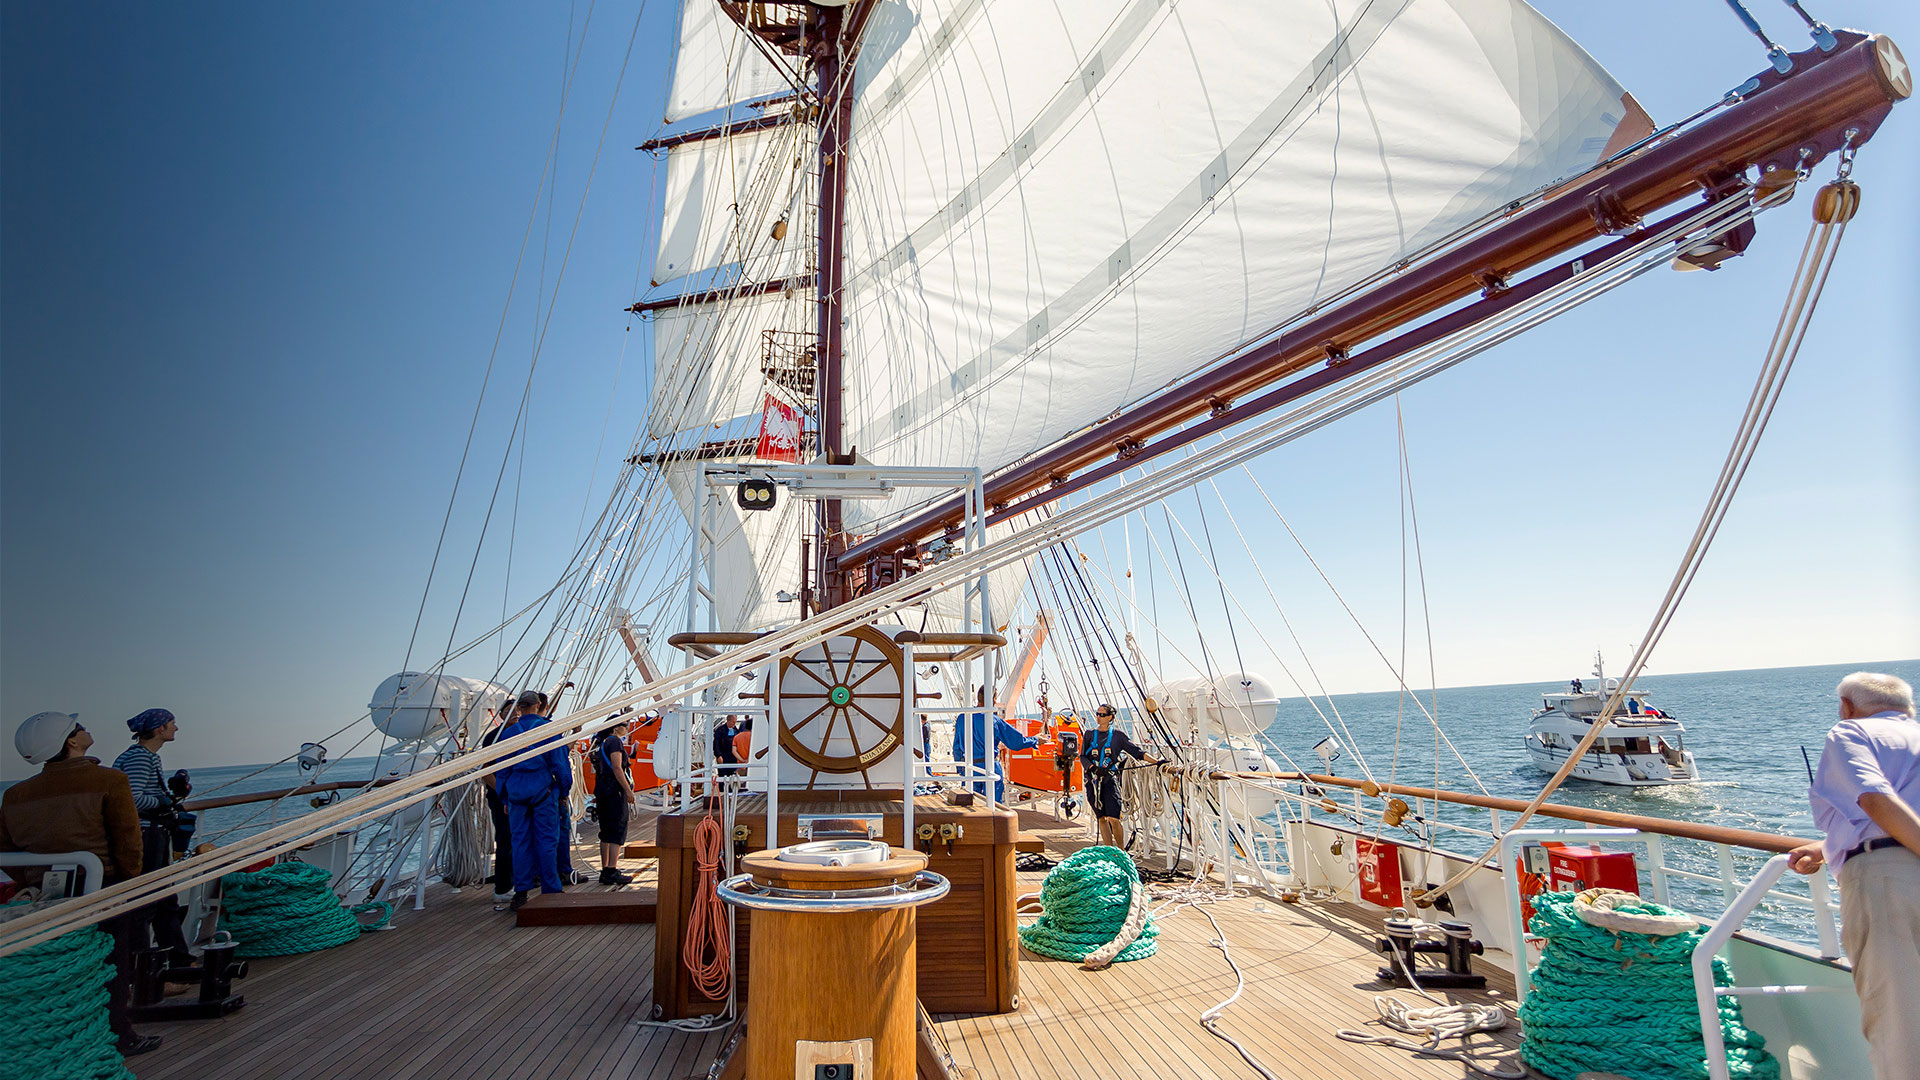 On deck of Conrad Le Quy Don during sea trials in the Baltic Sea